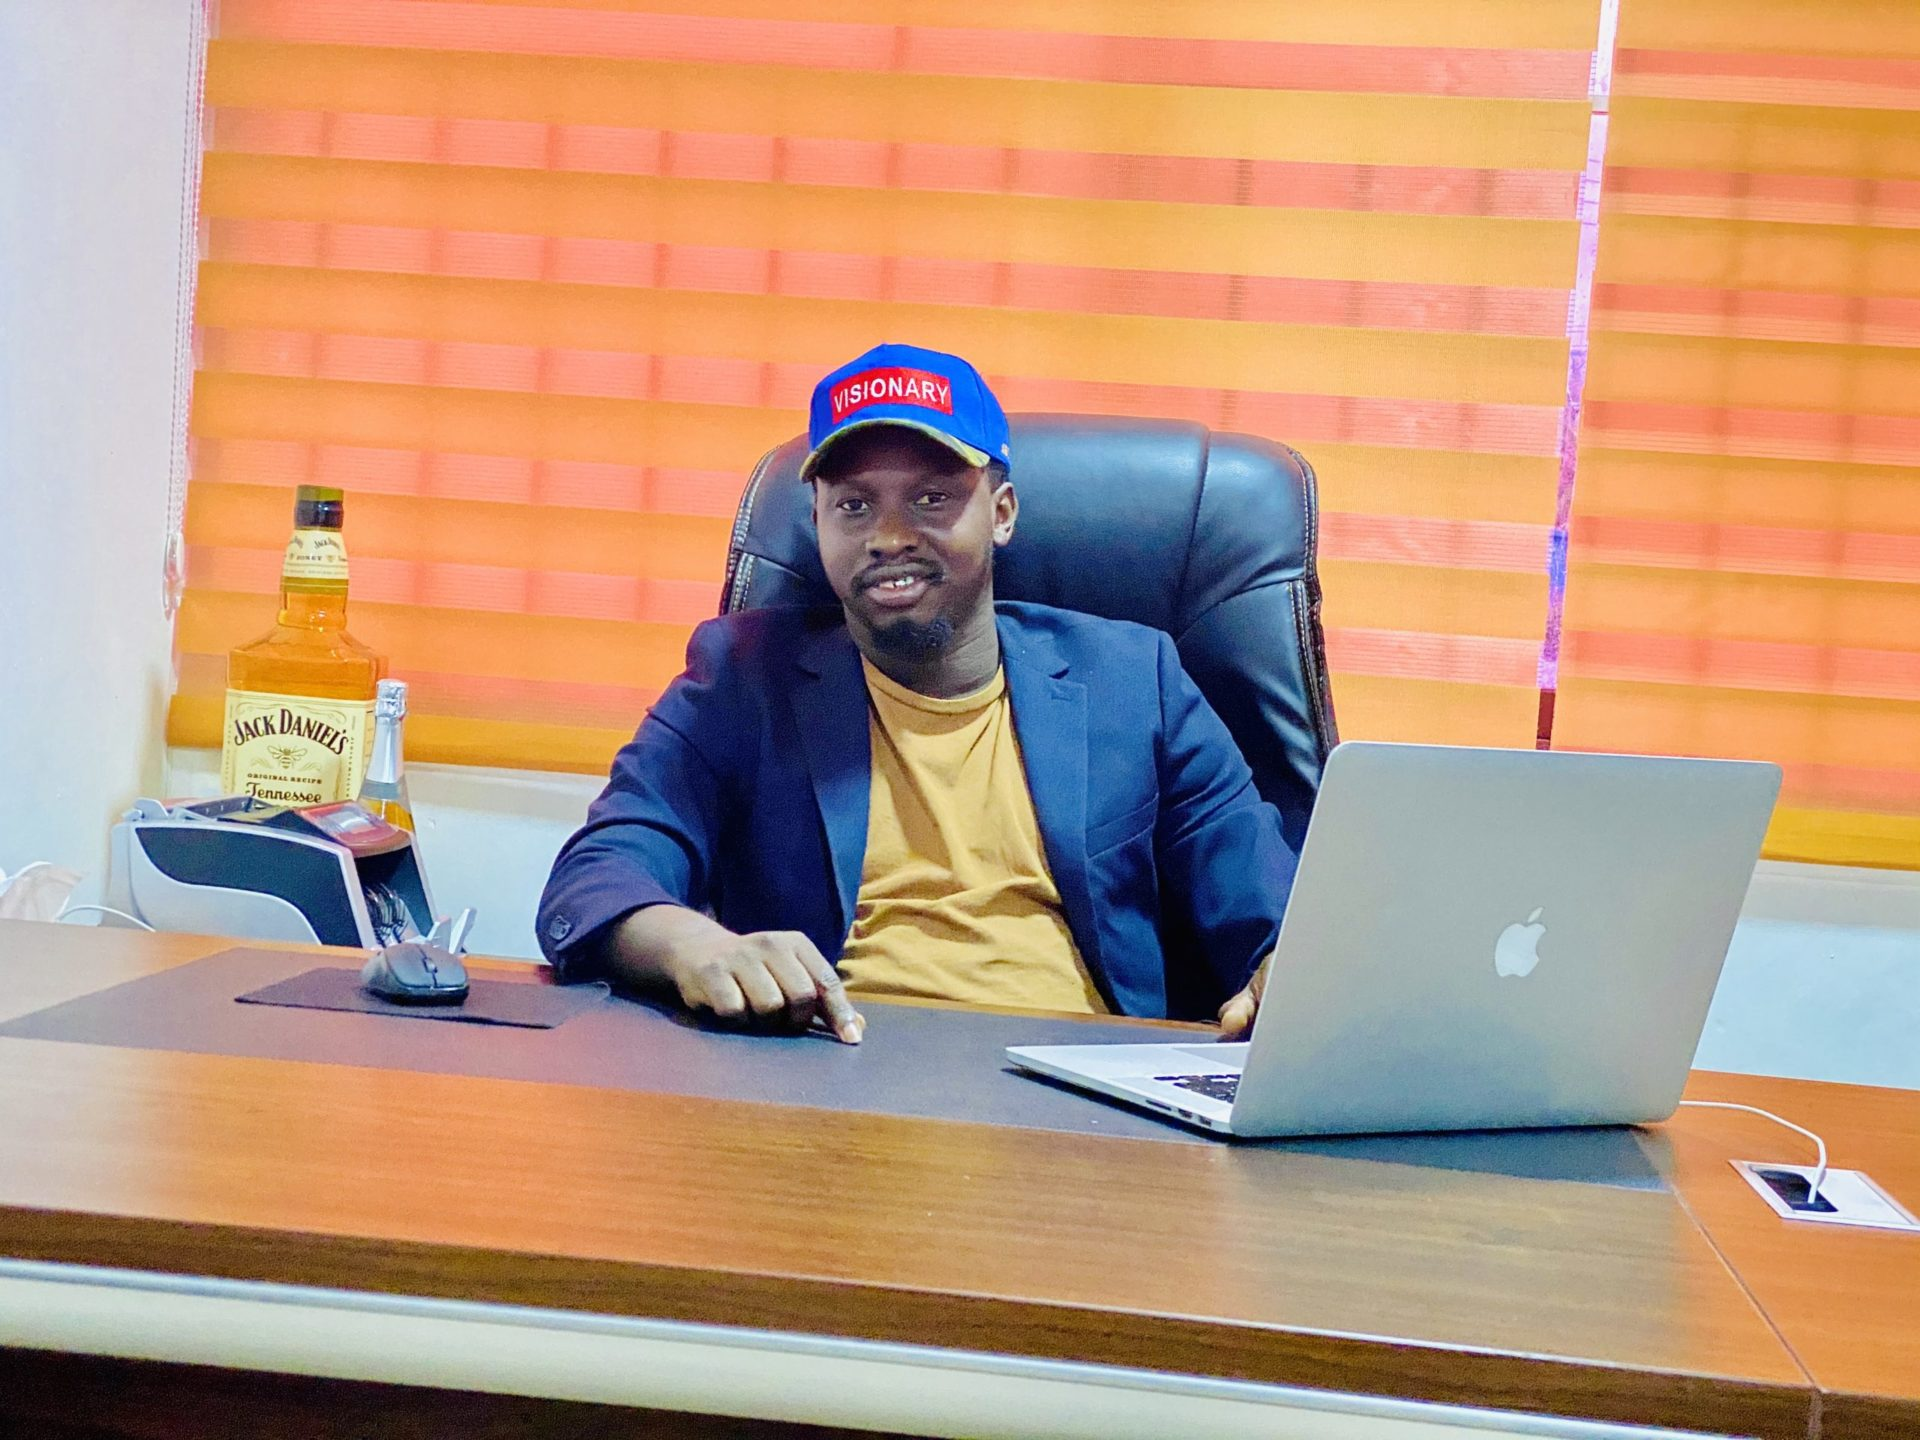 ABD Traore: WatsUp TV CEO, Earns 2020 Ghana Industry CEO Awards Nomination